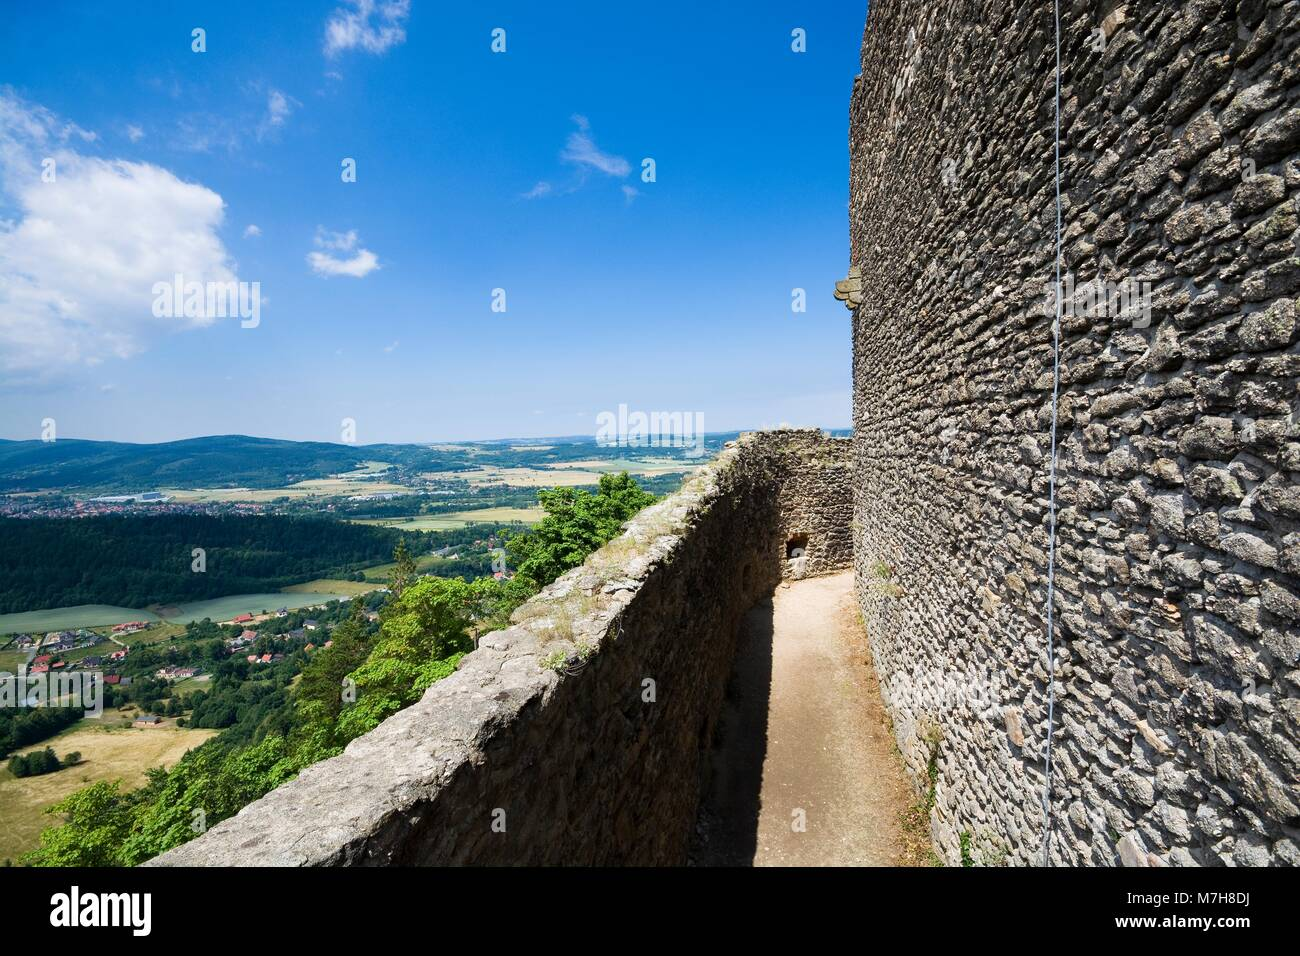 View of ruins of medieval Chojnik castle situated on the top of high hill covered with forest in Jelenia Gora, Poland Stock Photo